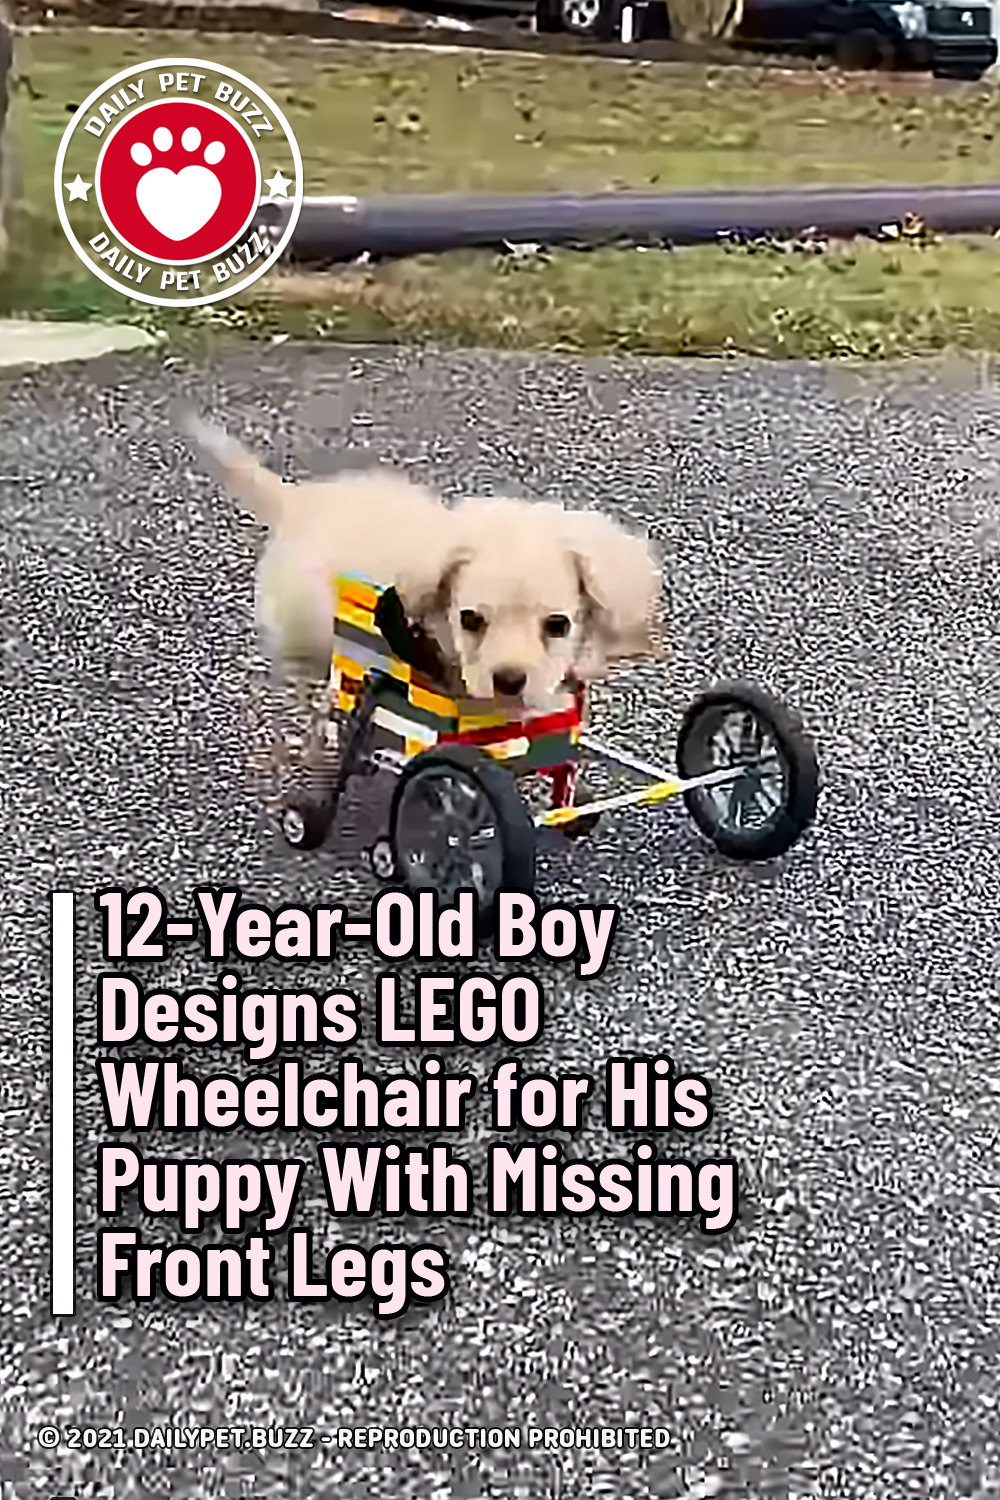 12-Year-Old Boy Designs LEGO Wheelchair for His Puppy With Missing Front Legs